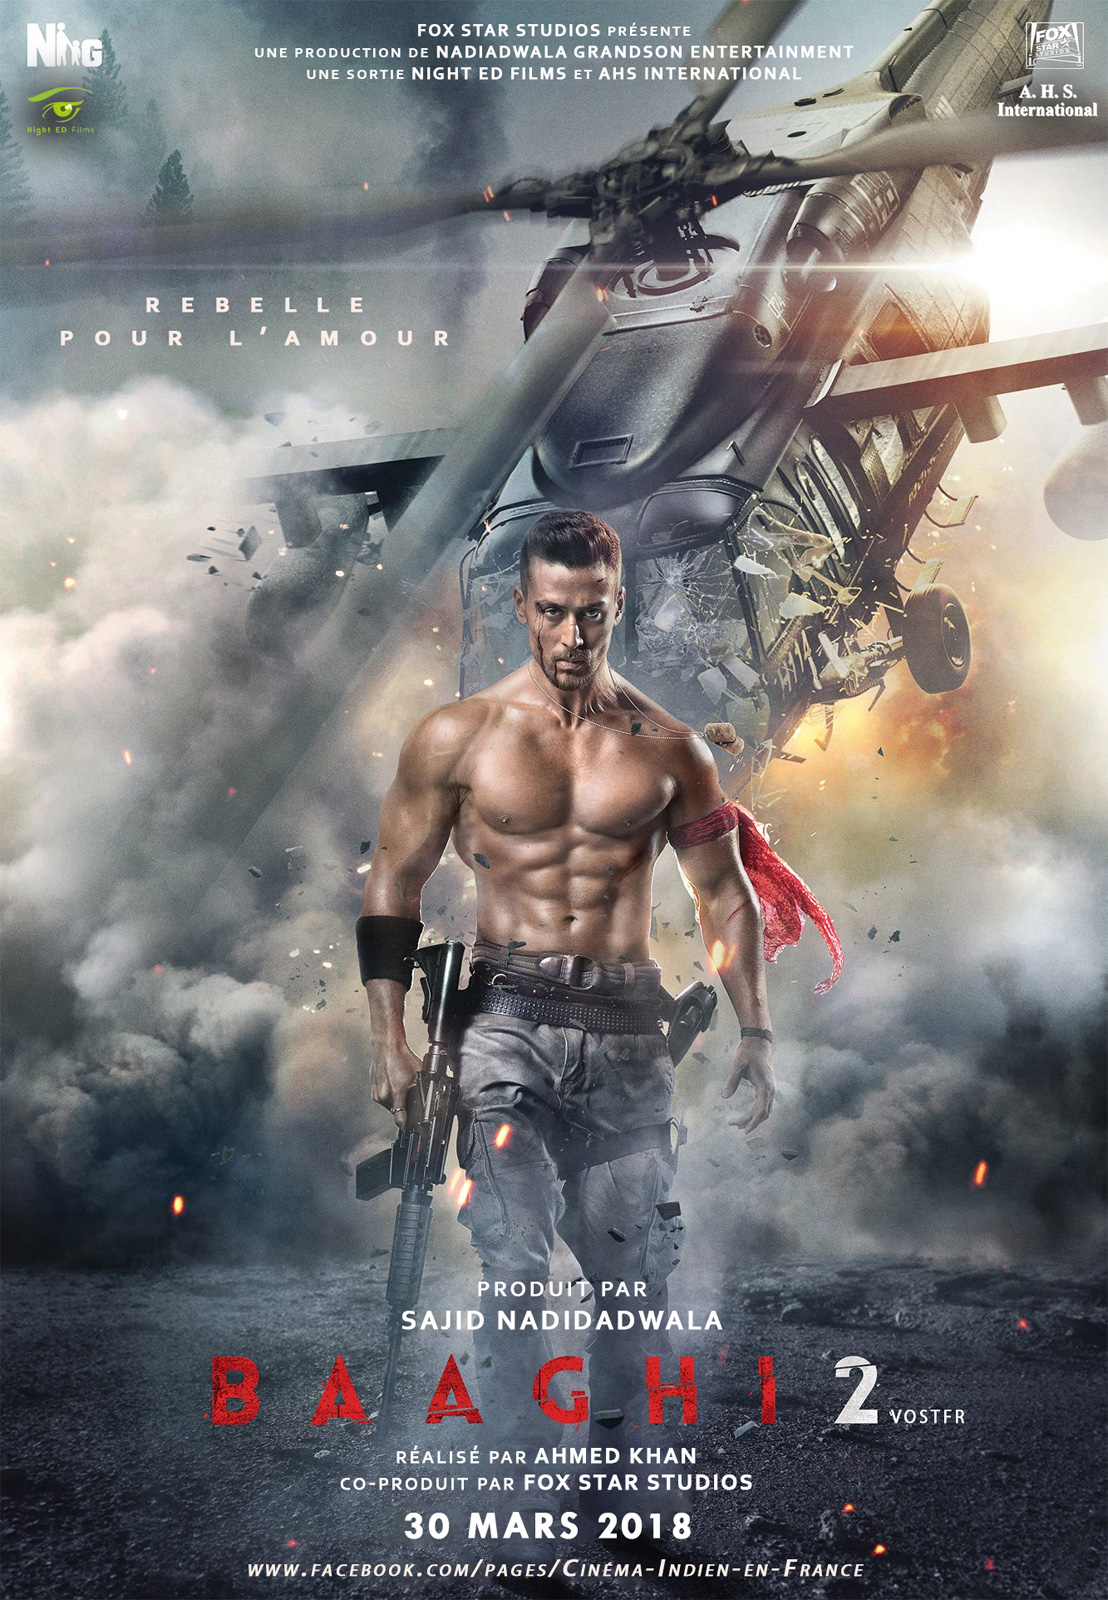 Baaghi 2 - Le Rebelle streaming